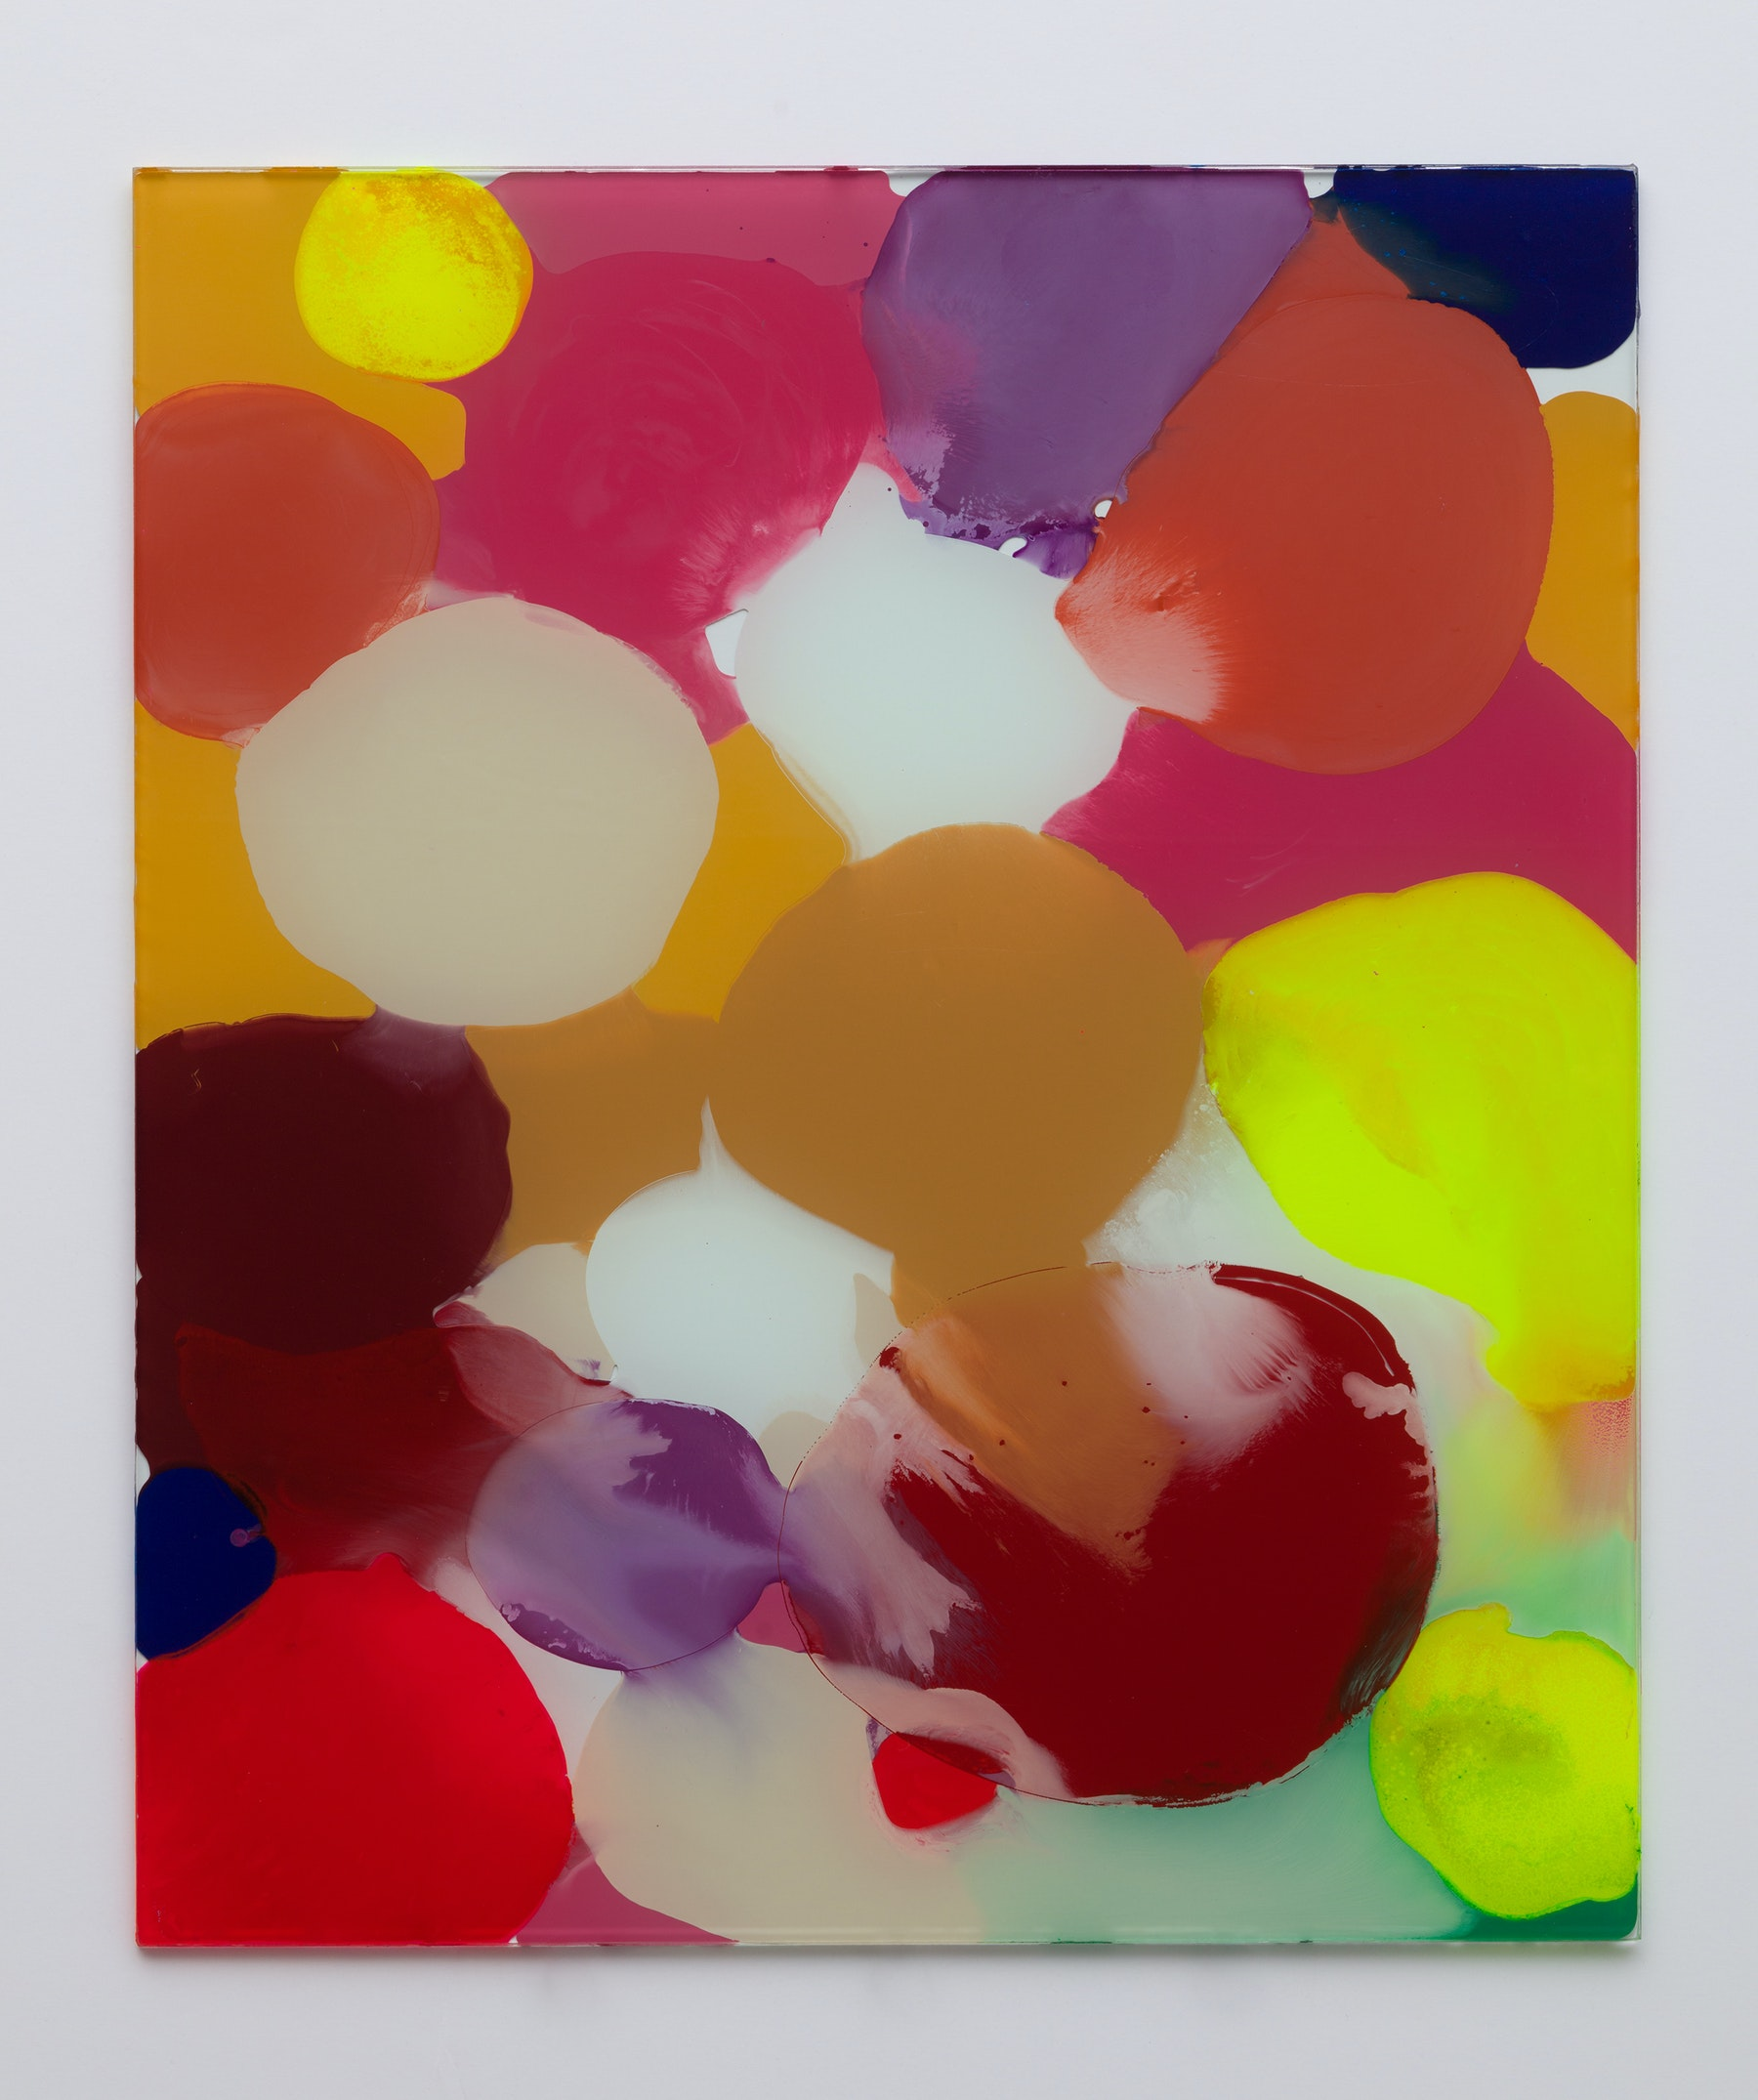 "Yunhee Min ""Up Close in Distance (variation study a2),"" 2018 Enamel on laminated glass 30 x 25"" [HxW] (76.2 x 63.5 cm) Inventory #MIN343 Courtesy of the artist and Vielmetter Los Angeles Photo credit: Brica Wilcox"